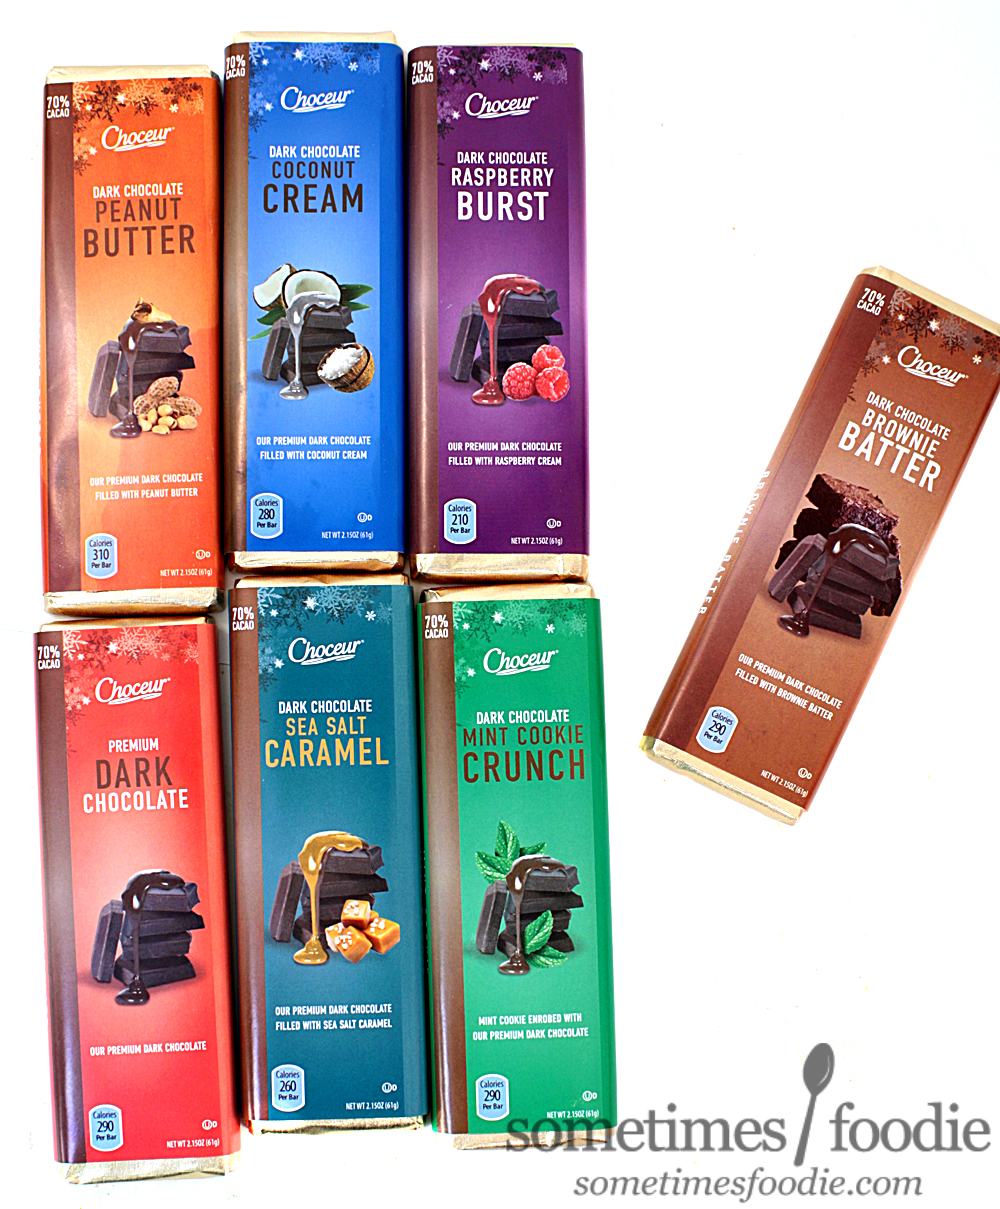 Sometimes Foodie: 7 Different Dark Chocolate Aldi Chocolate Bars!